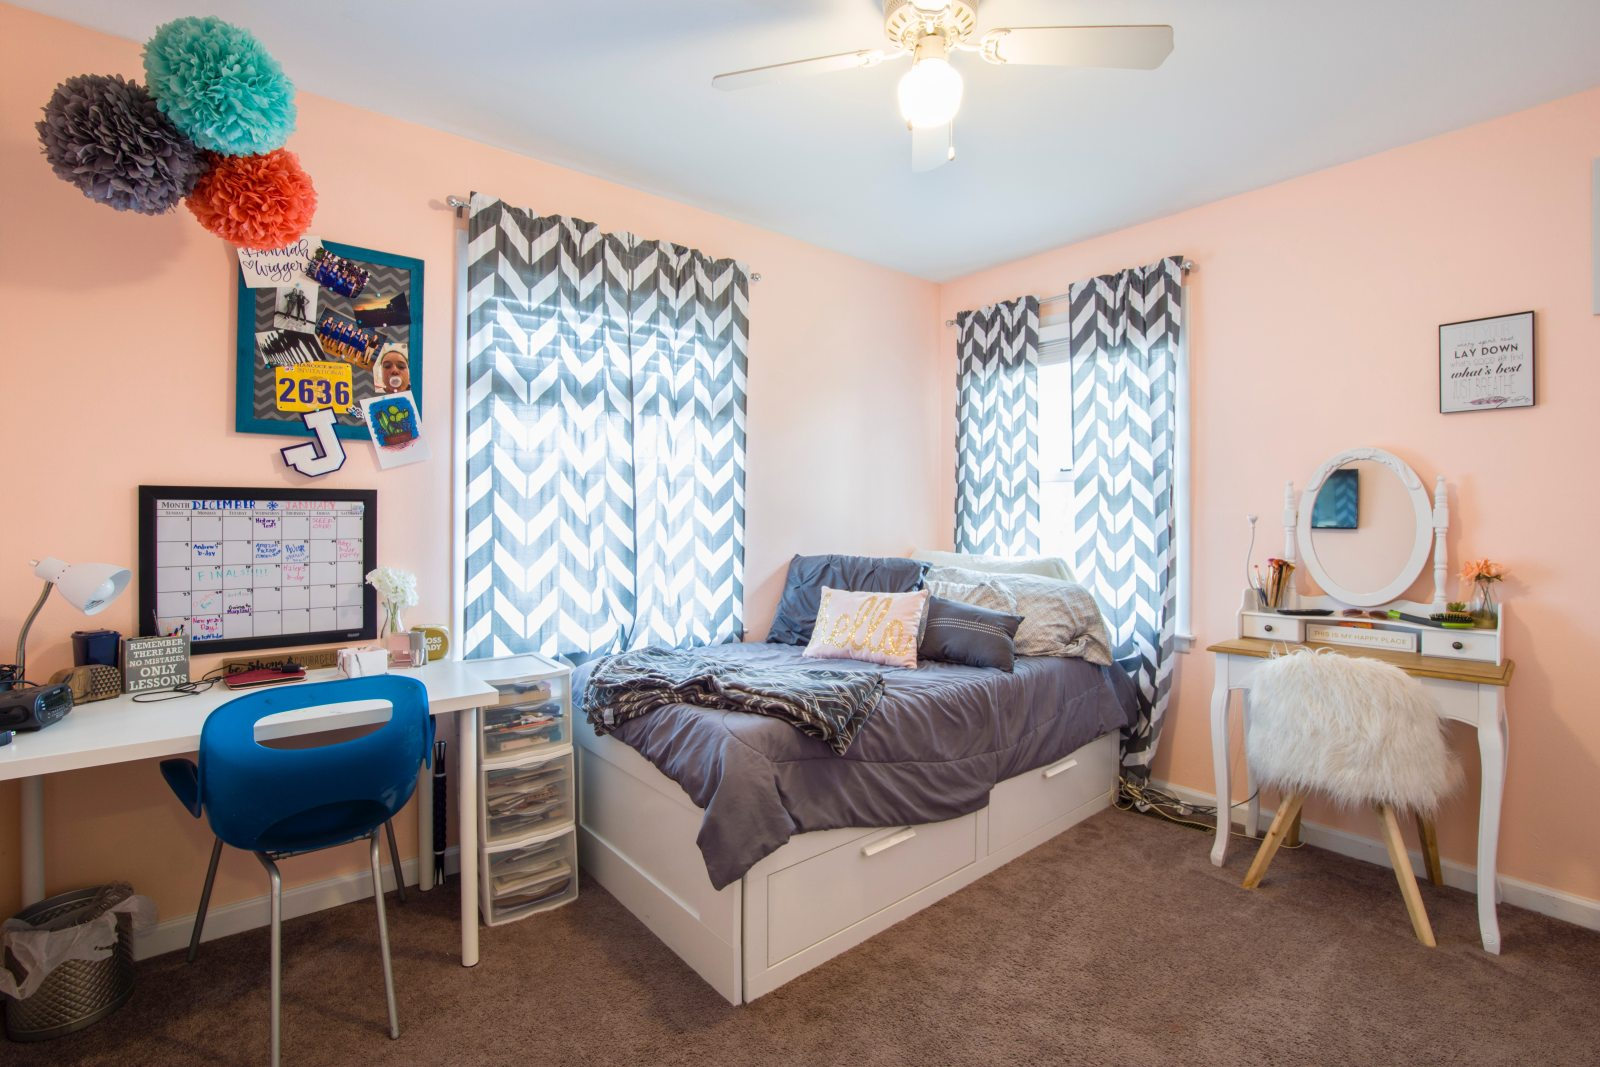 Dorm rooms can be really dull when you first move in, so here are 6 ways to brighten your dorm room without breaking the bank.